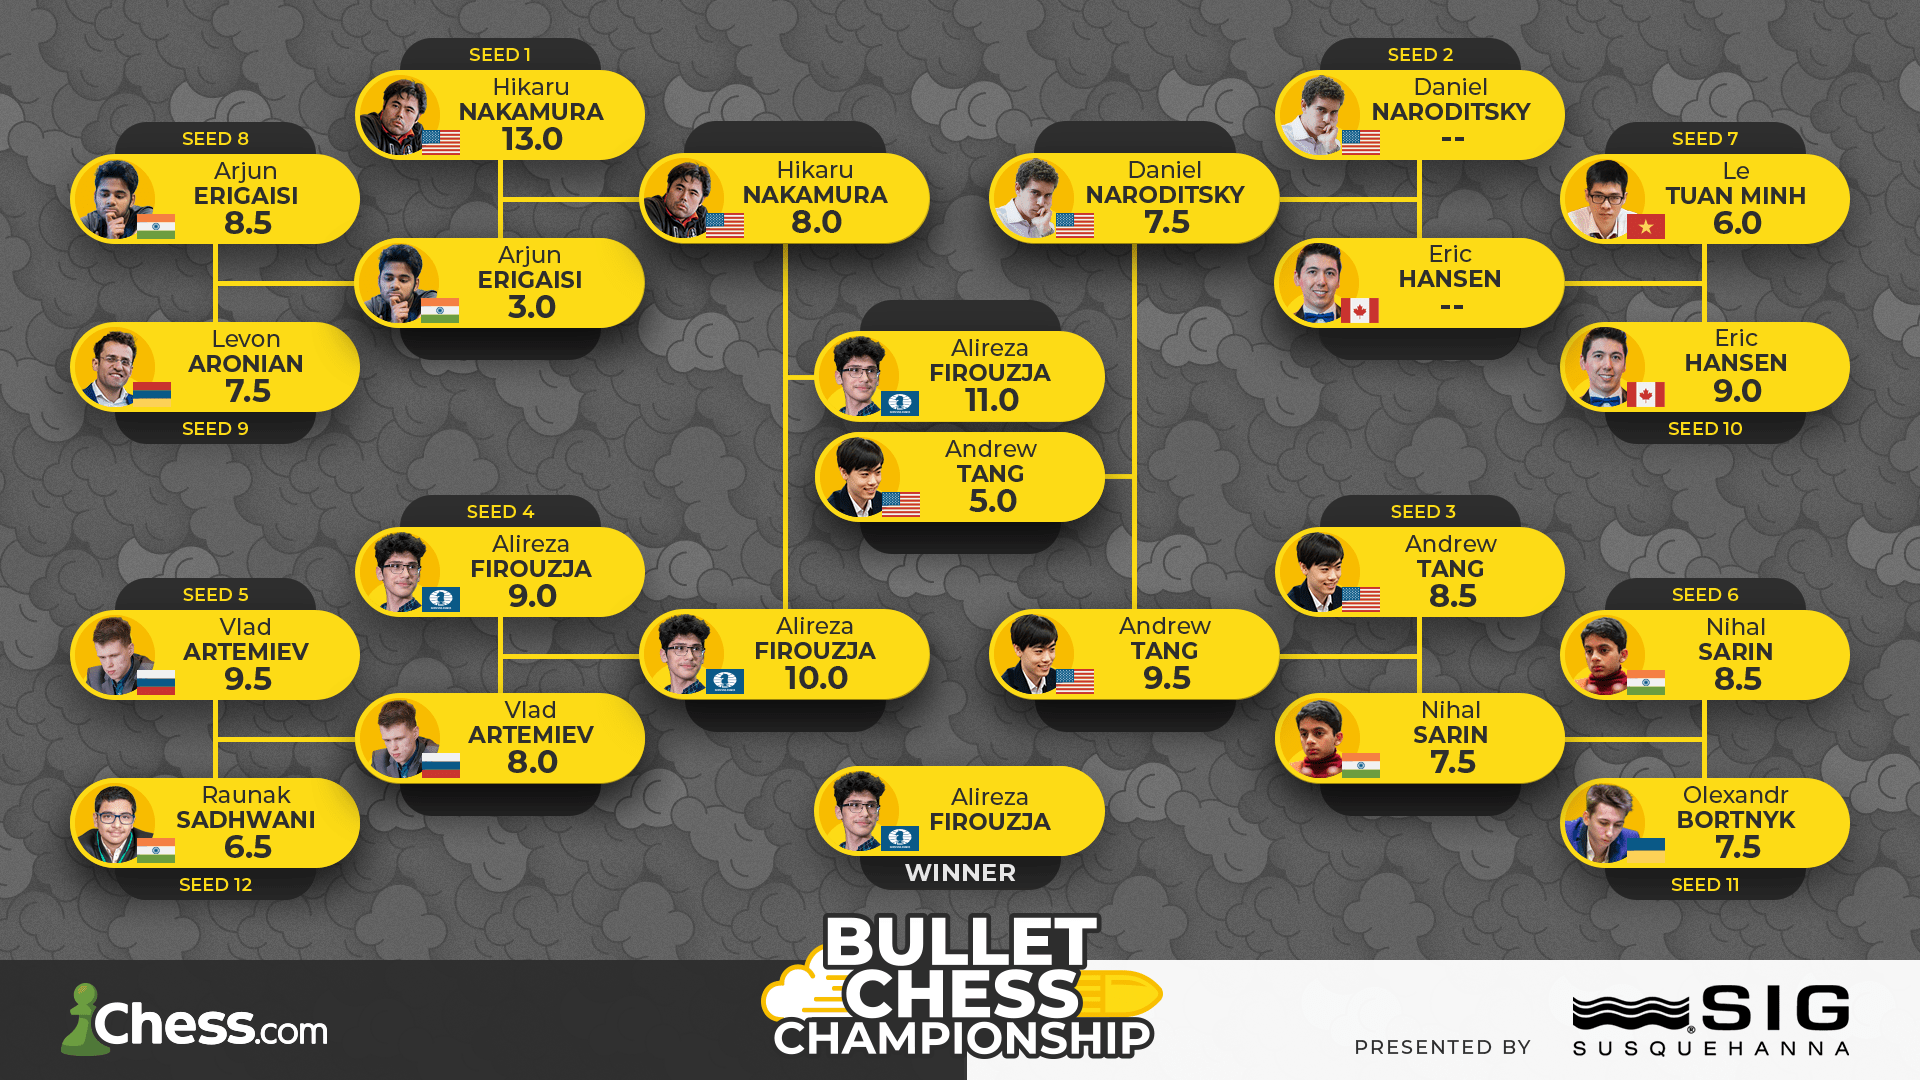 2021 Bullet Chess Championship results